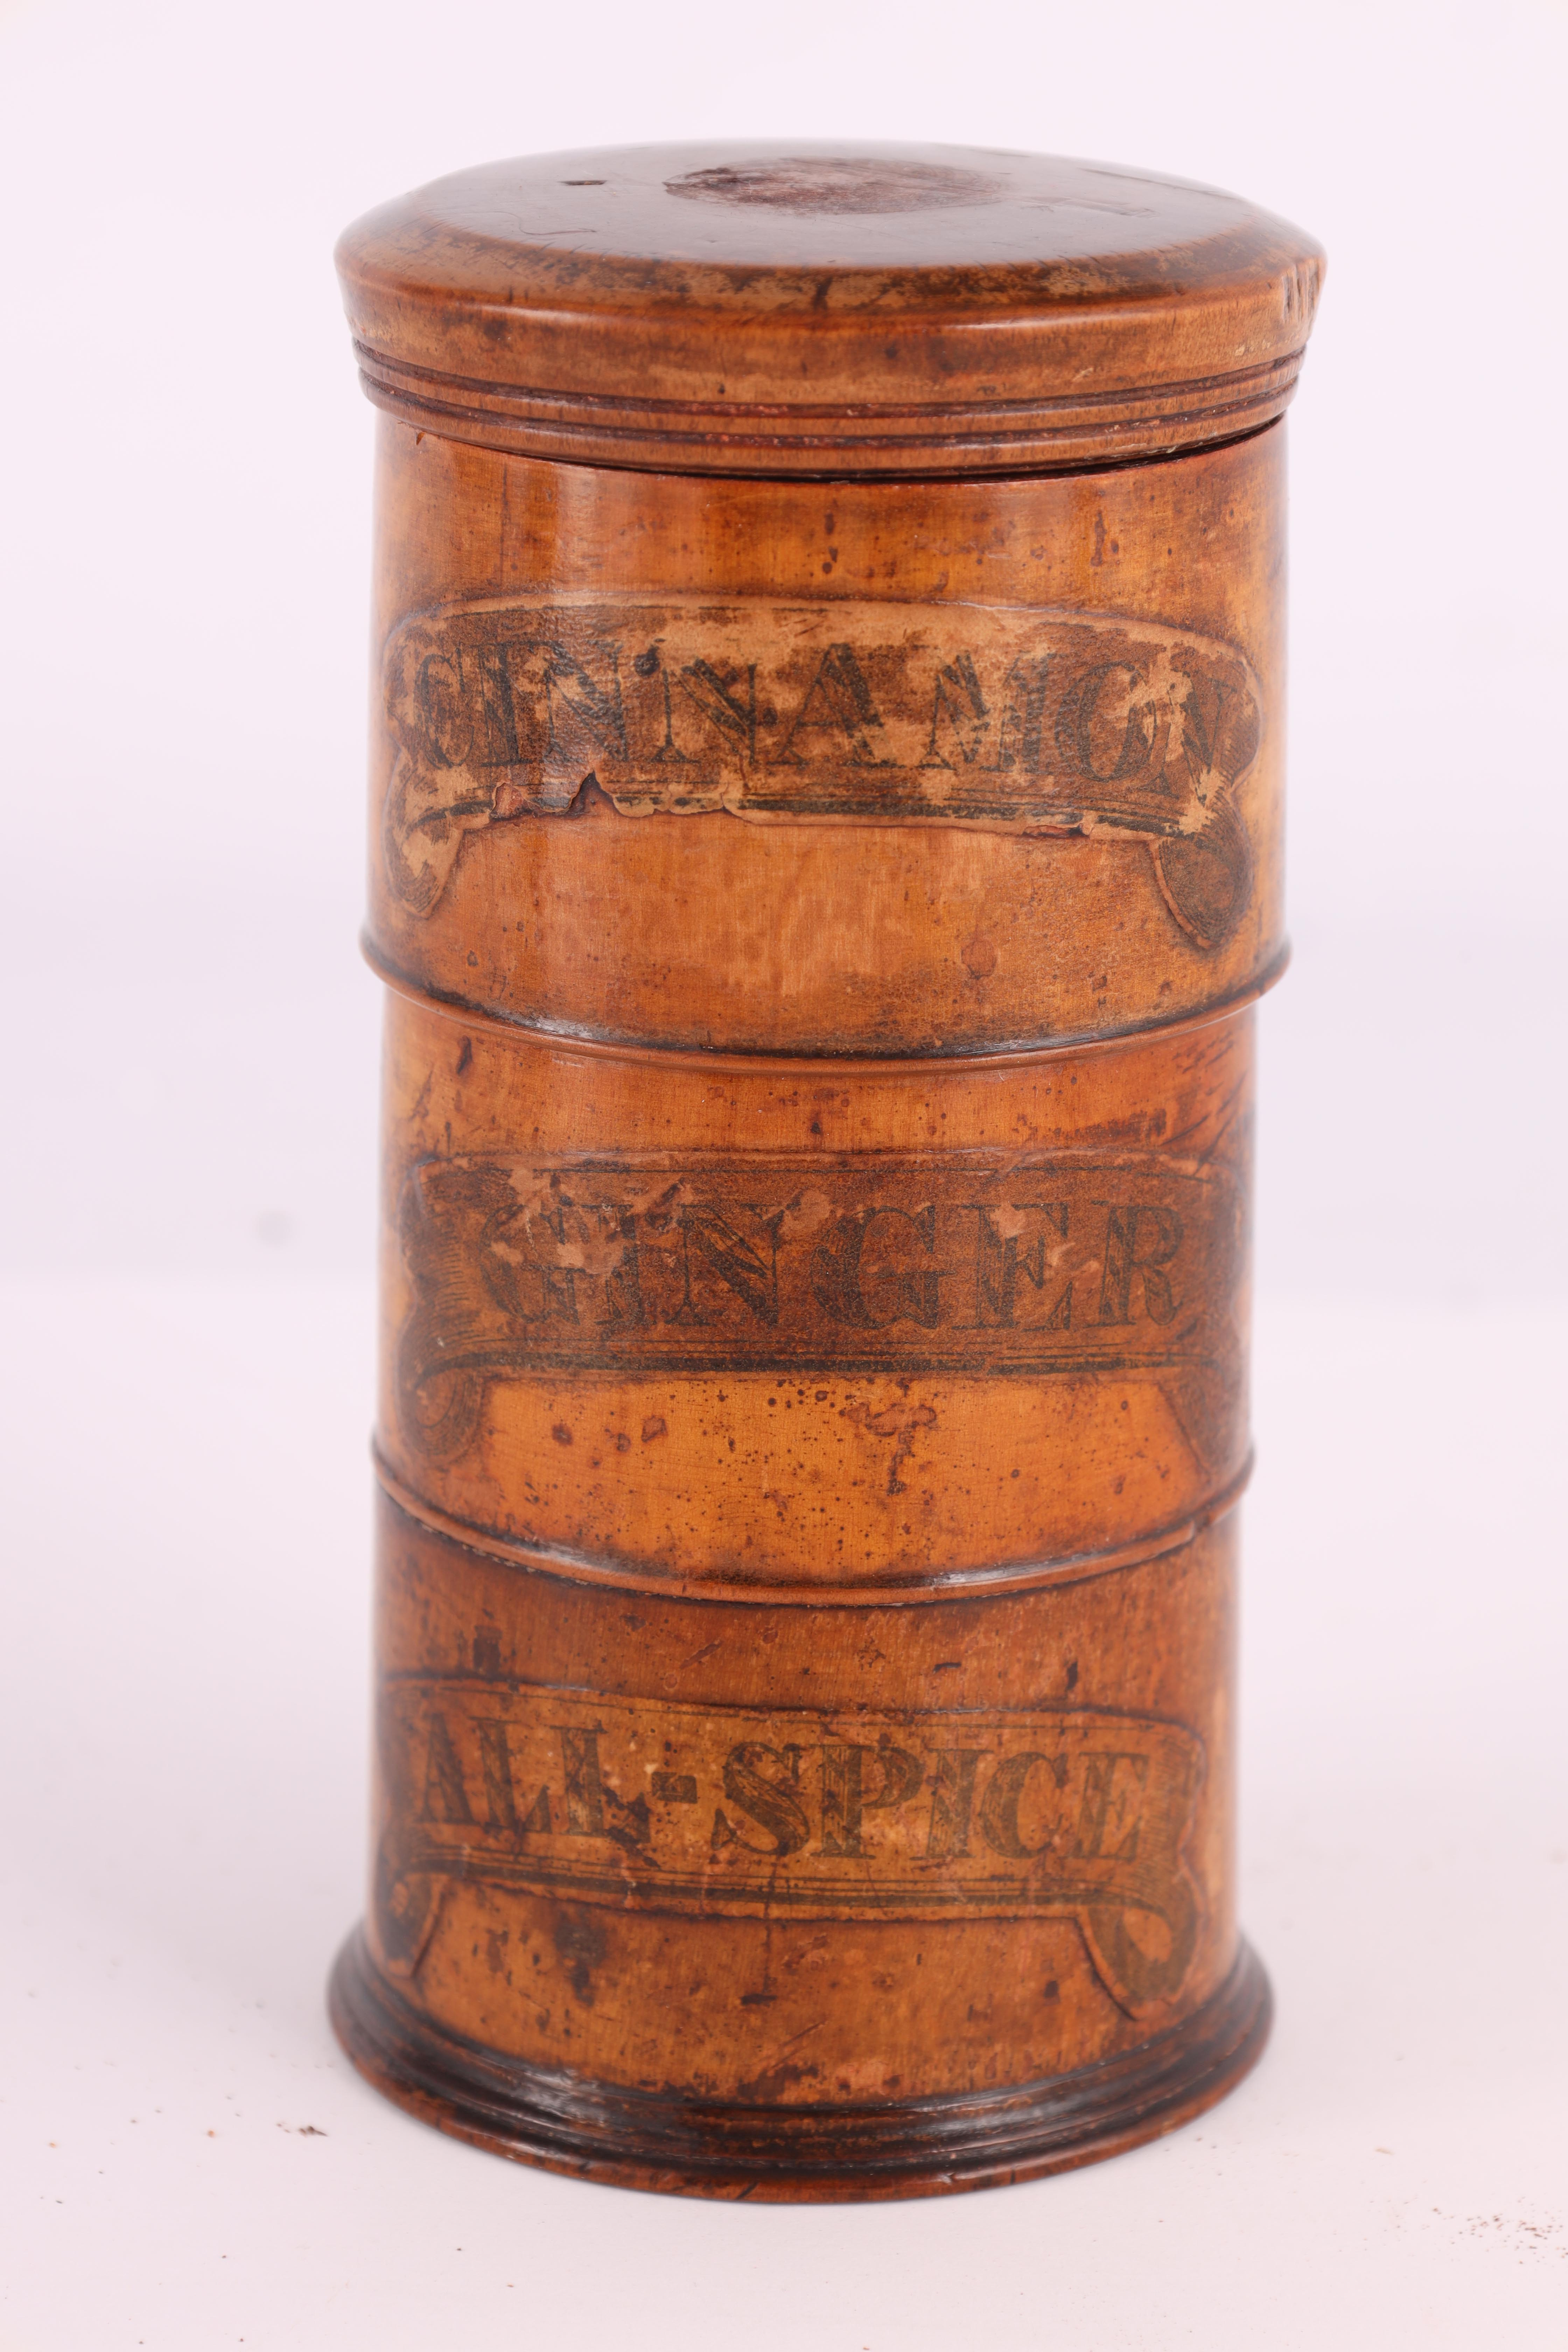 TWO EARLY 19TH CENTURY SYCAMORE TREEN SPICE TOWERS with original labels, the three stack 15cm - Image 7 of 13